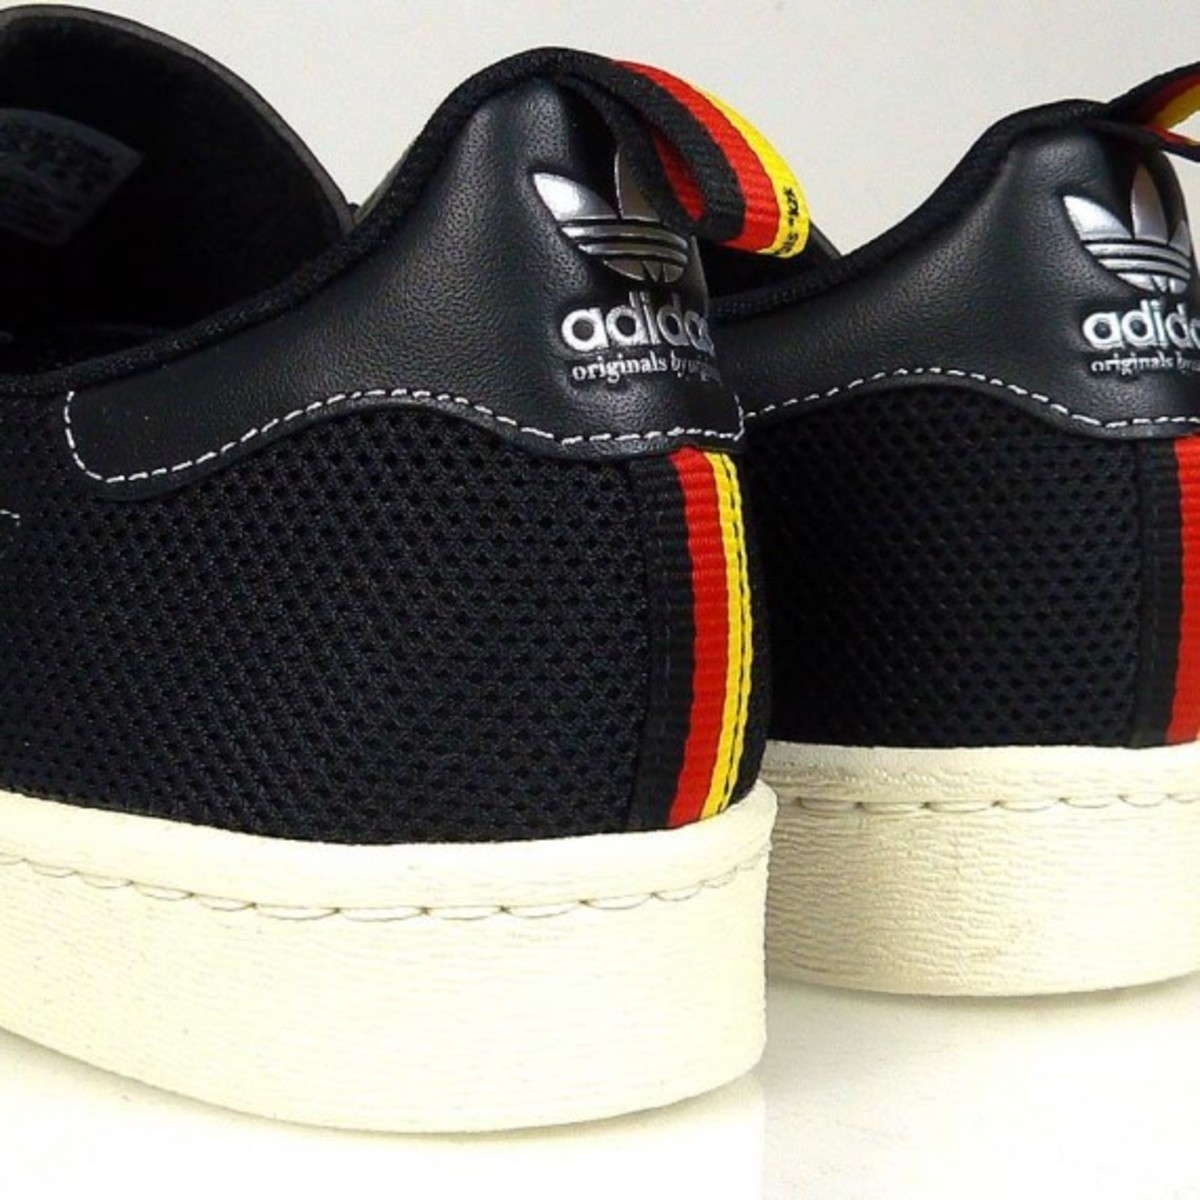 adidas-originals-clot-kzklot-superstar-80-04